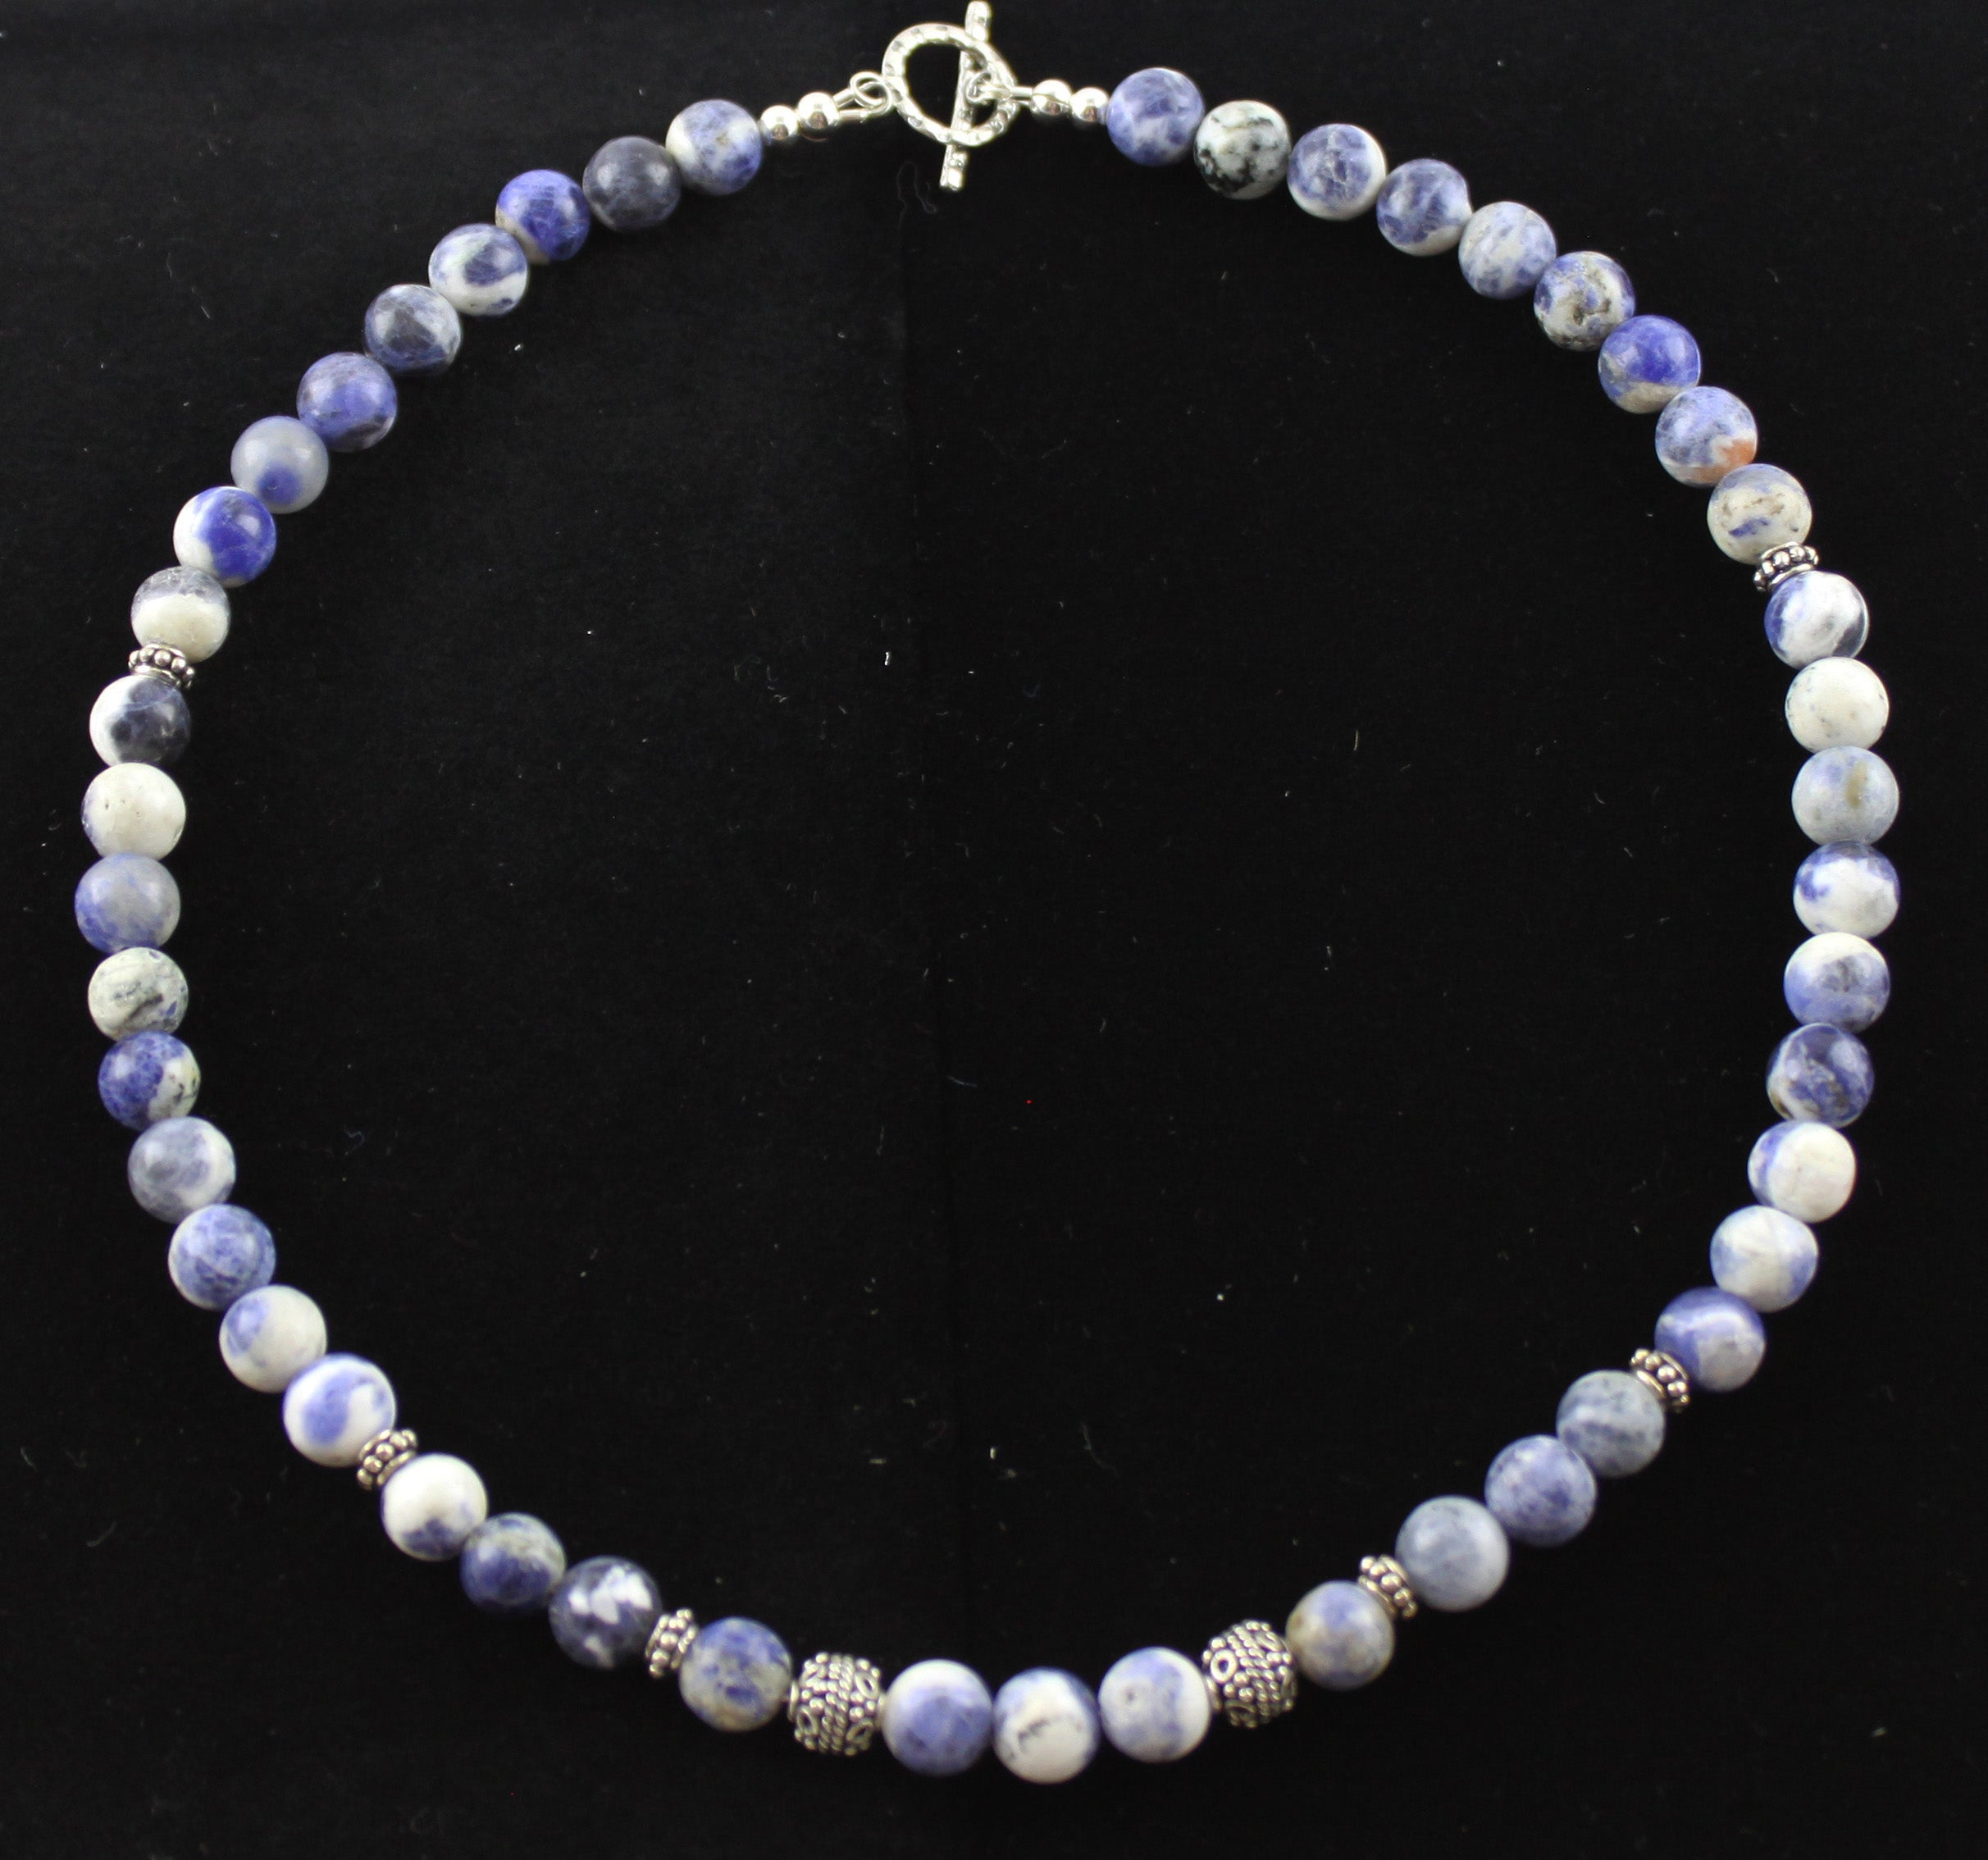 Blue Sodalite & Bali Bead Necklace